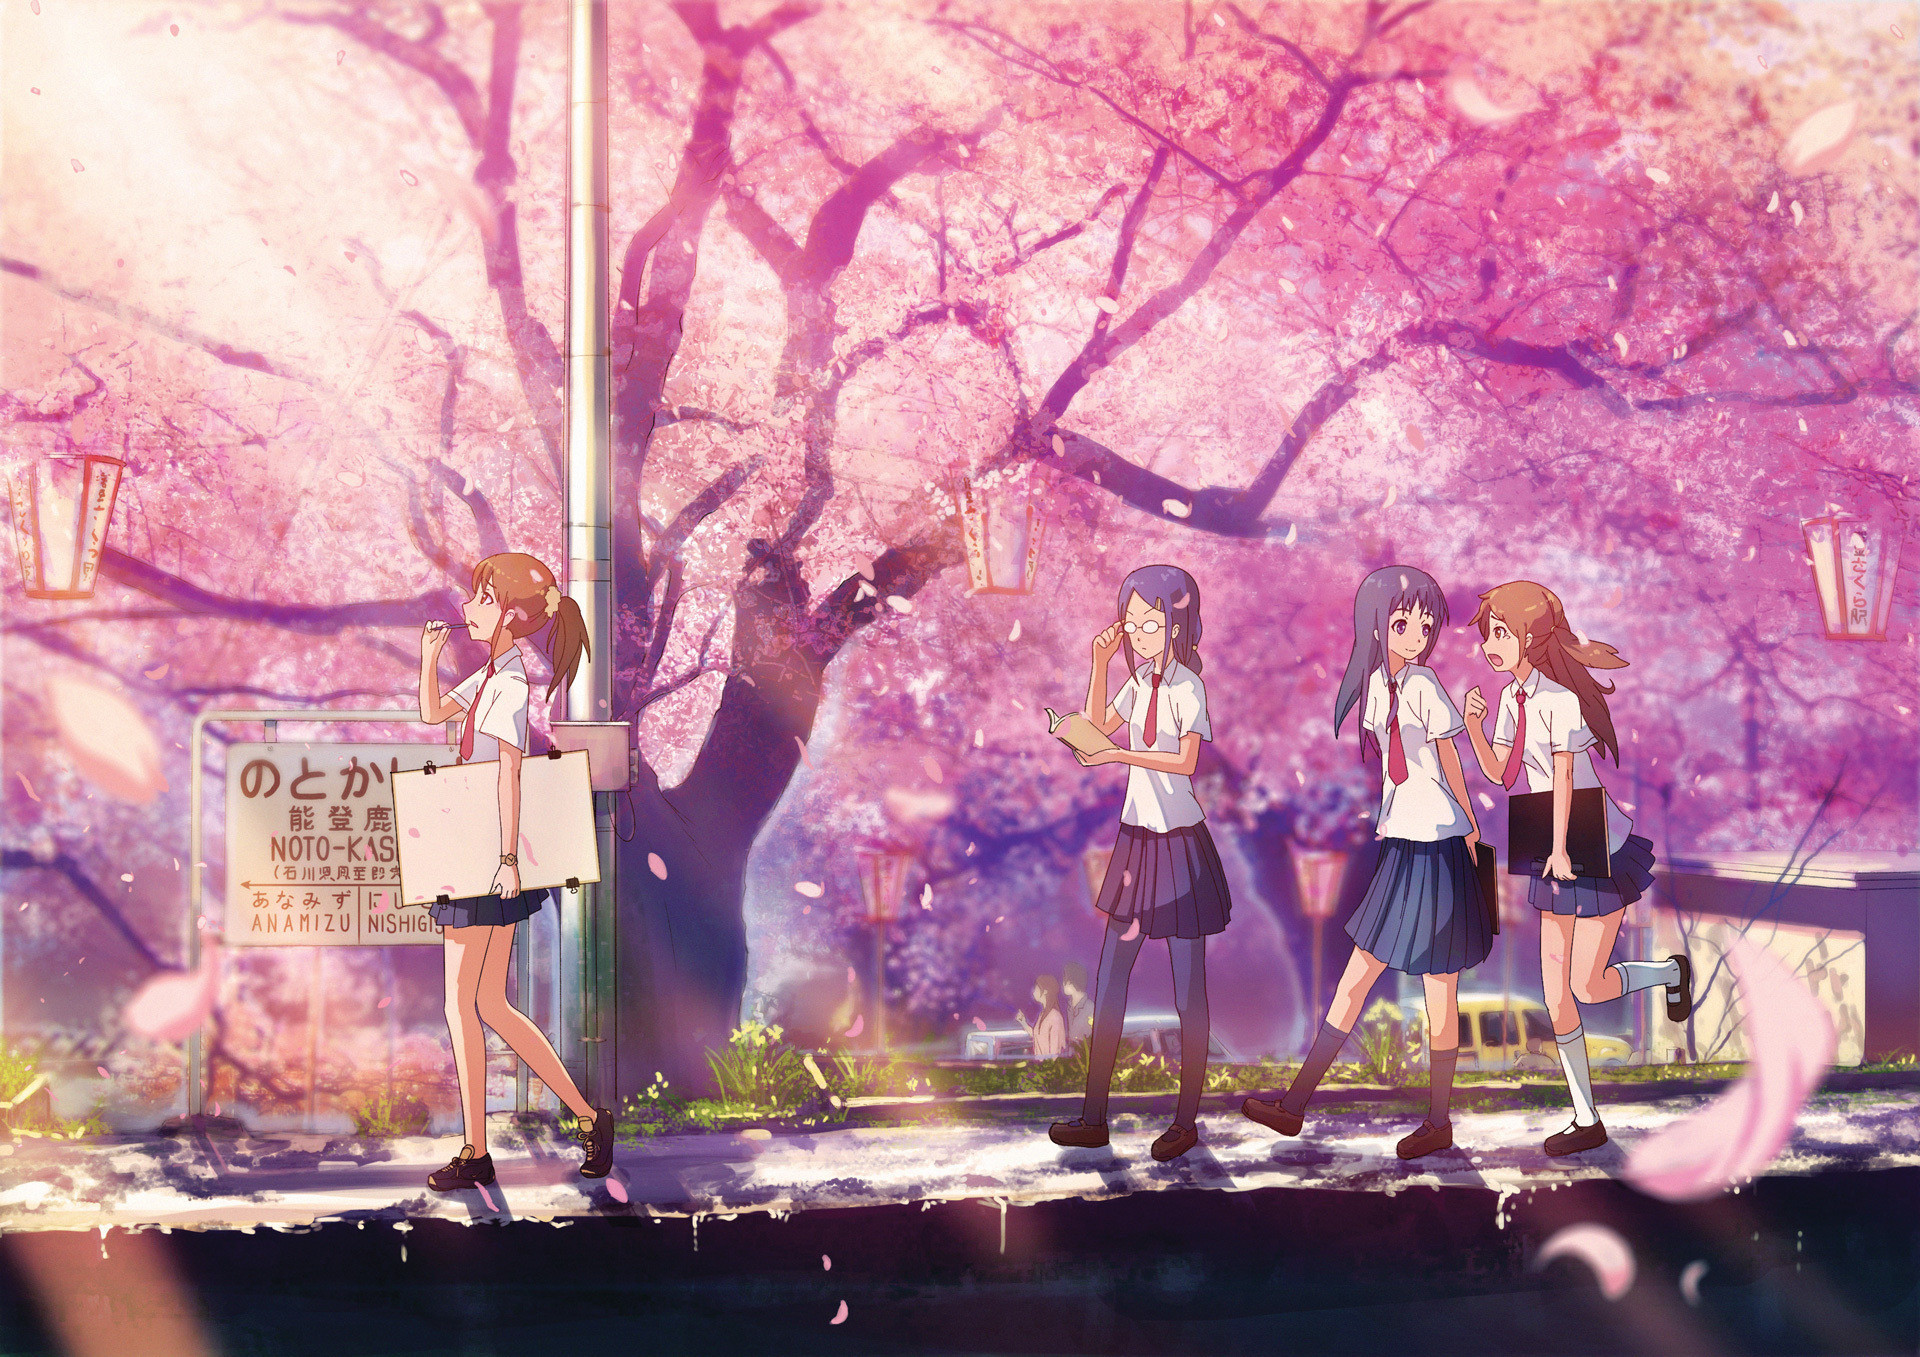 Anime Cherry Blossom Wallpaper 72 Images